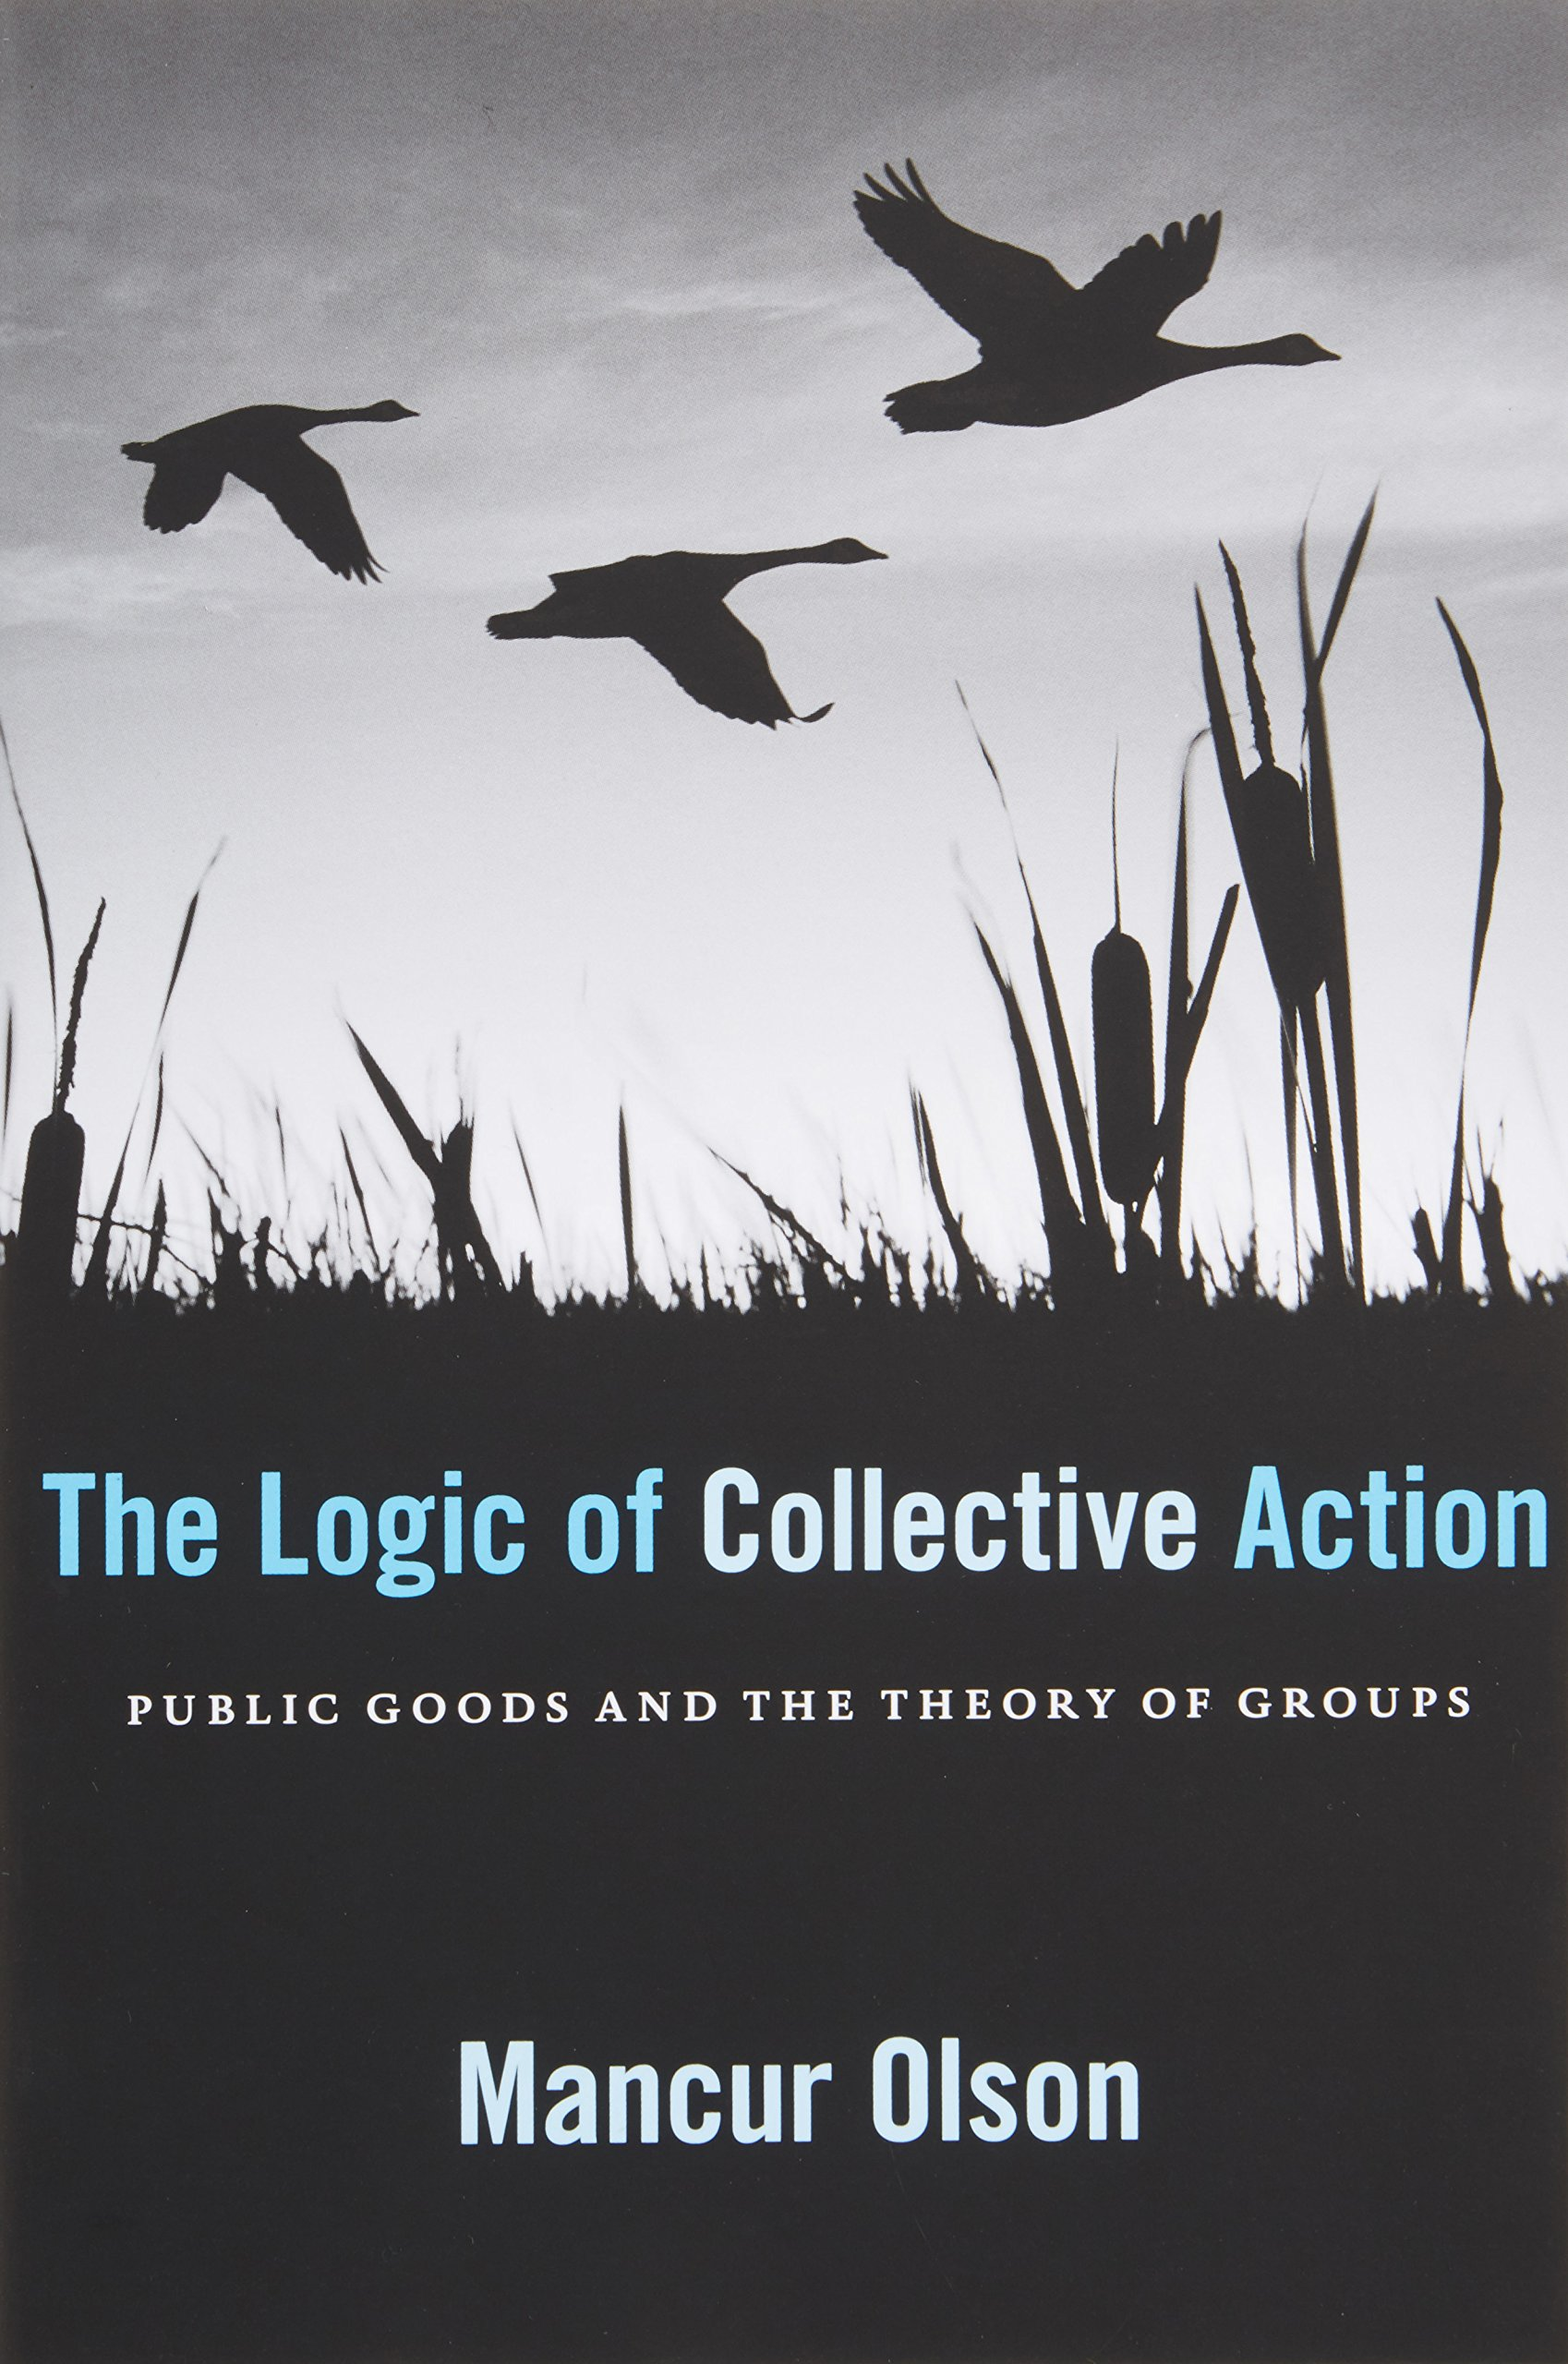 the-logic-of-collective-action-public-goods-and-the-theory-of-groups-second-printing-with-new-preface-and-appendix-harvard-economic-studies